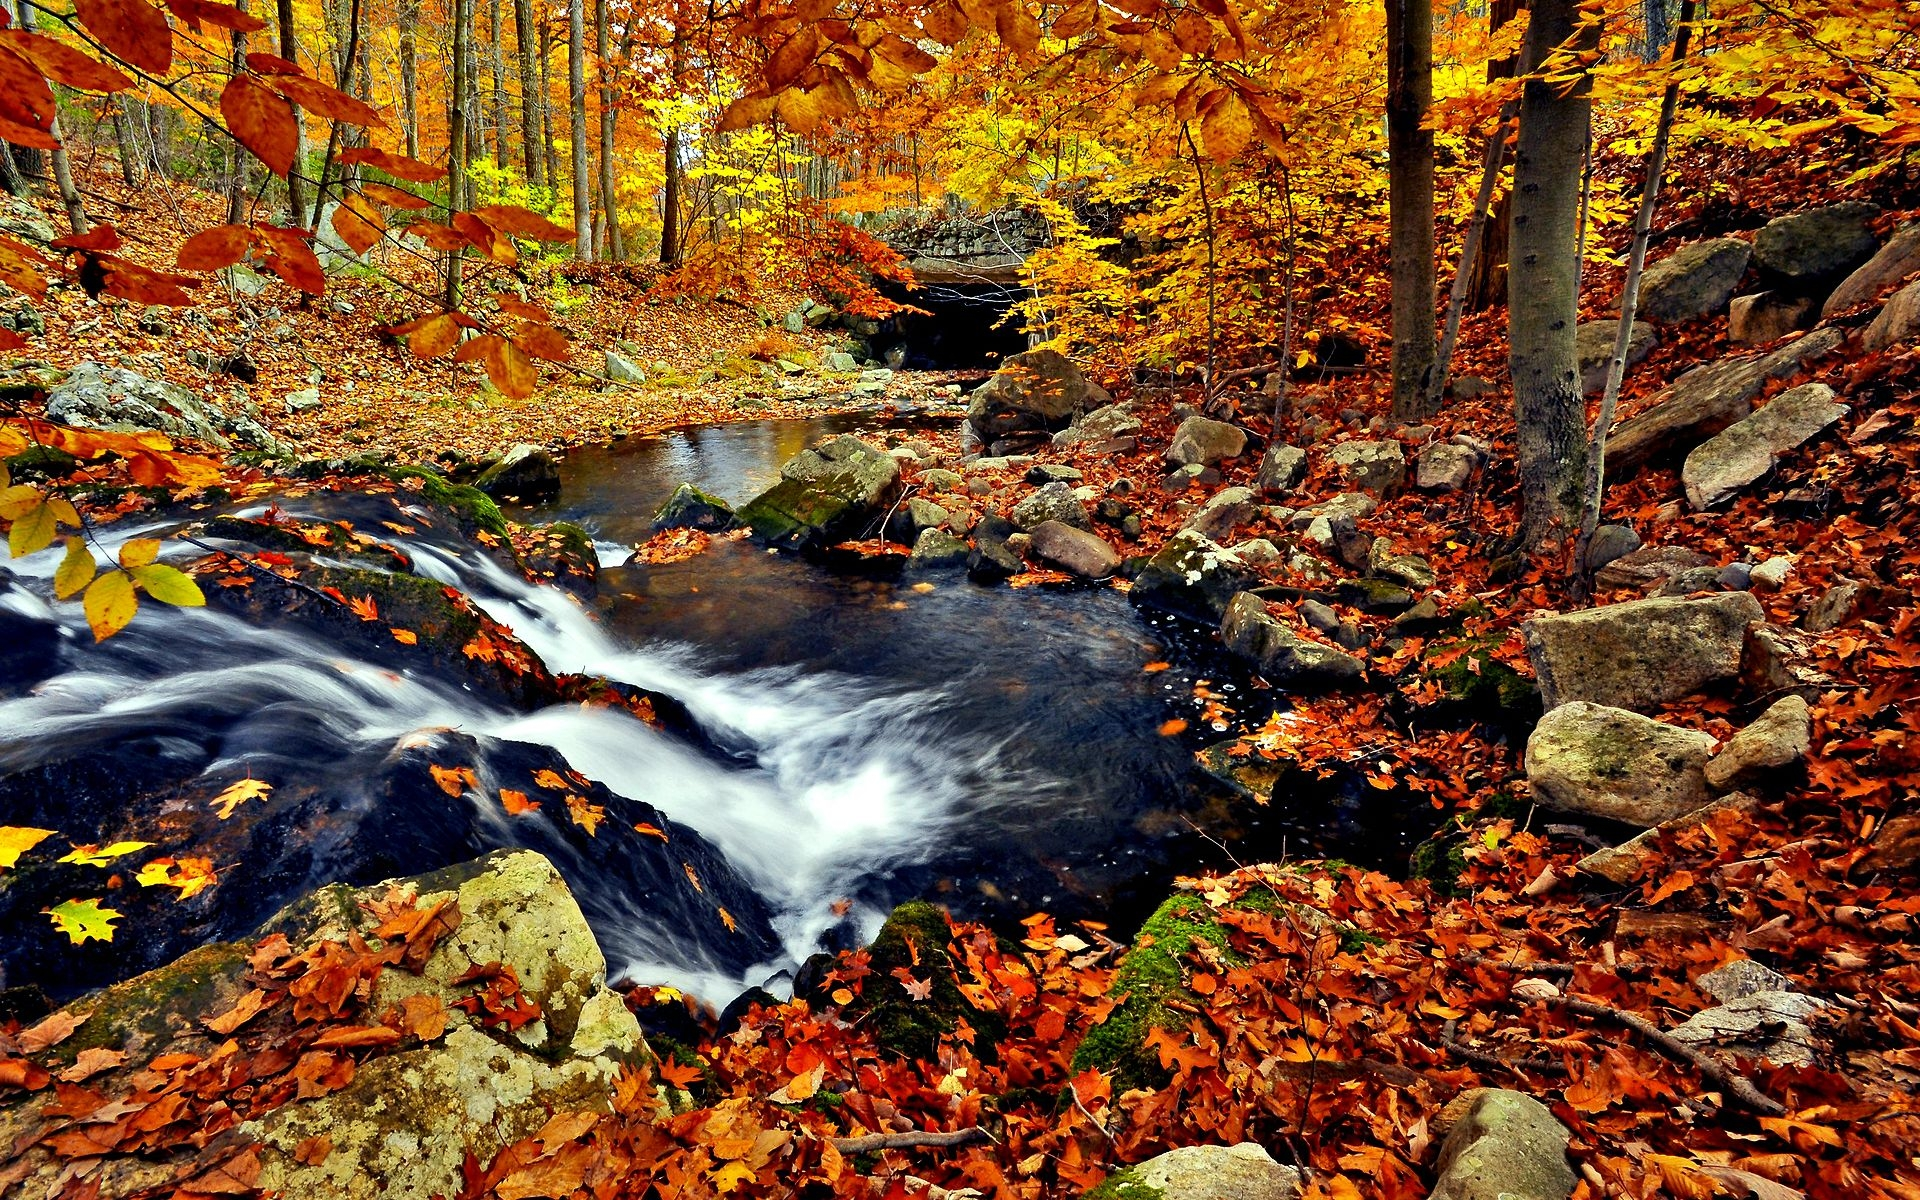 Falling Leaves Live Wallpaper Hd Autumn Forest Wallpaper For Desktop Pixelstalk Net